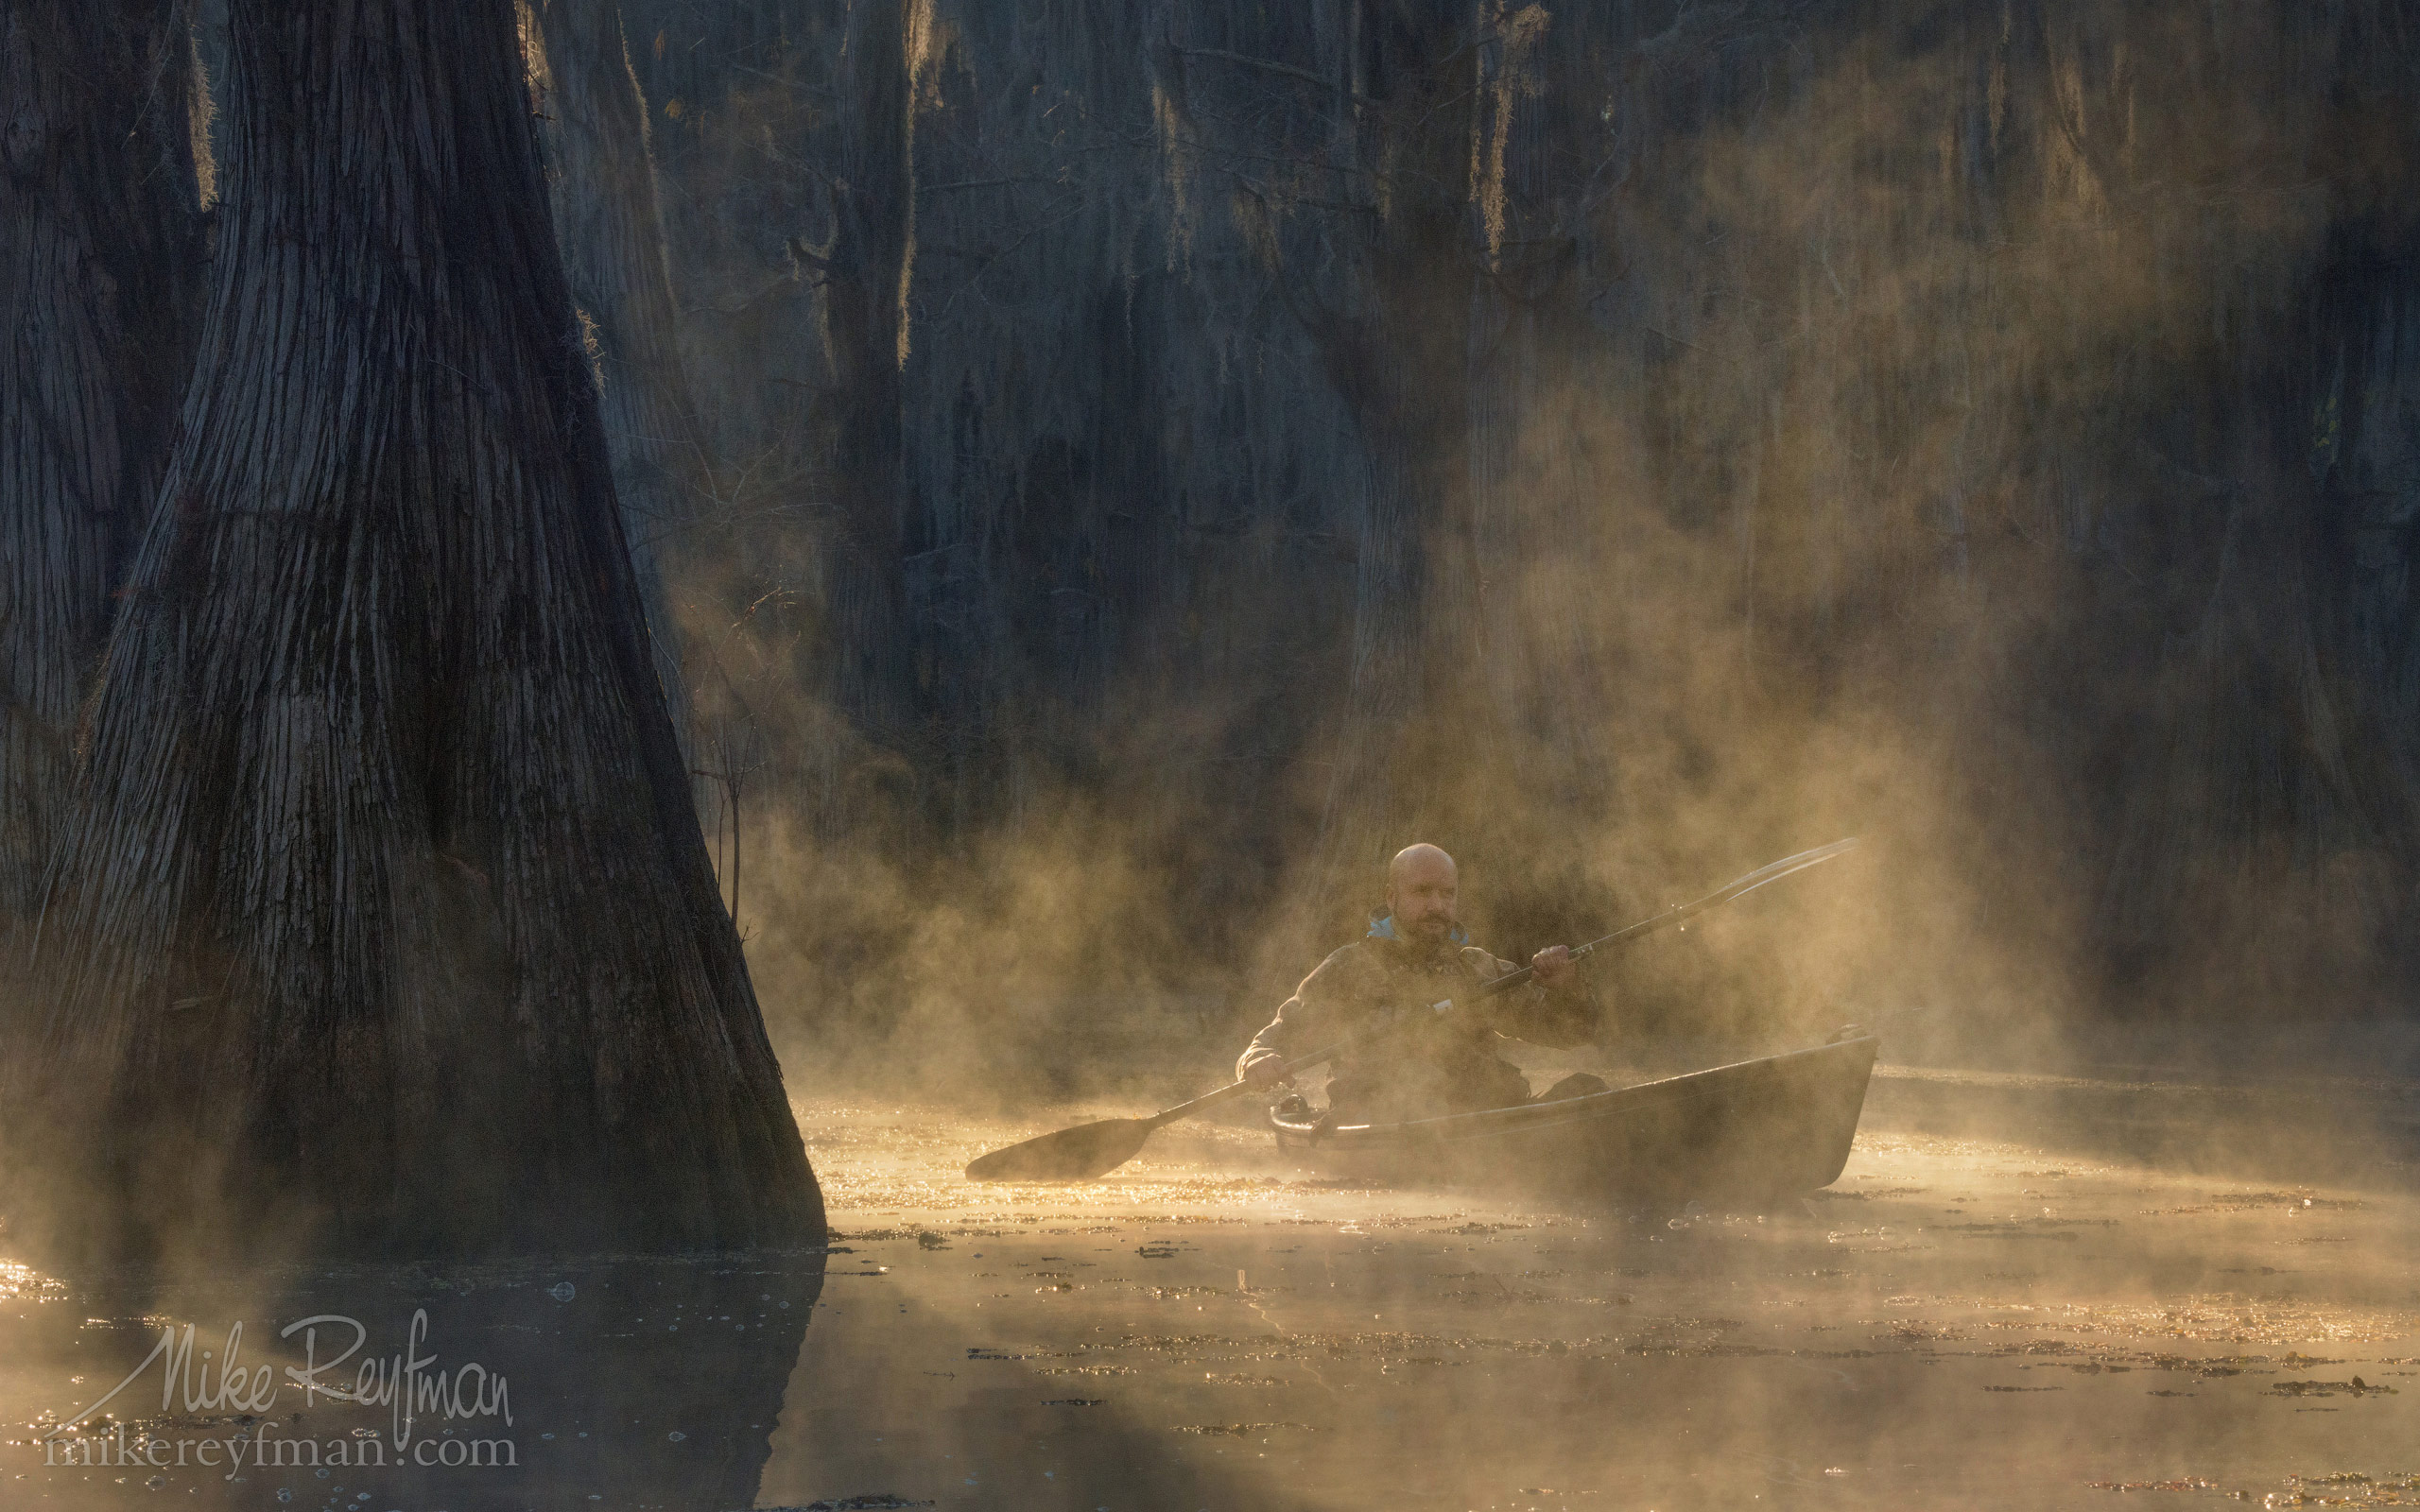 Kayaker paddling between Bald Cypress trees in the fog. Caddo Lake, Texas, US 047-LT1-50A3538.jpg - Bold Cypress and Tupelo Trees in the swamps of Atchafalaya River Basin. Caddo, Martin and Fousse Lakes. Texas/Louisiana, USA. - Mike Reyfman Photography